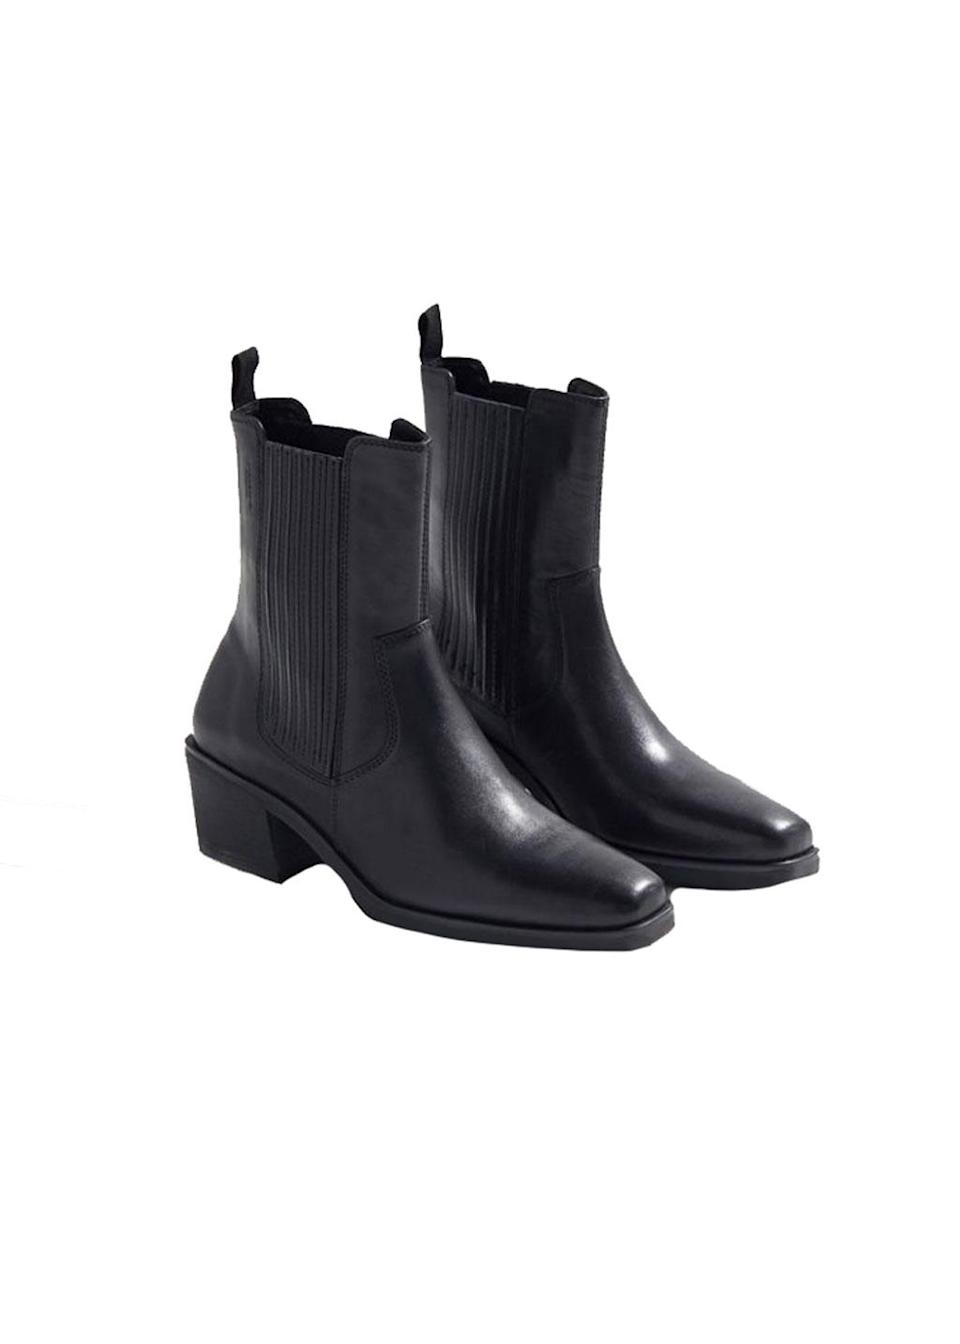 """<p>Jump on the Western bandwagon with these modern cowboy boots.<br><a href=""""https://fave.co/2qserAA"""" rel=""""nofollow noopener"""" target=""""_blank"""" data-ylk=""""slk:Shop it:"""" class=""""link rapid-noclick-resp"""">Shop it:</a> Simone Cowboy Boot, $195, <a href=""""https://fave.co/2qserAA"""" rel=""""nofollow noopener"""" target=""""_blank"""" data-ylk=""""slk:urbanoutfitters.com"""" class=""""link rapid-noclick-resp"""">urbanoutfitters.com</a> </p>"""